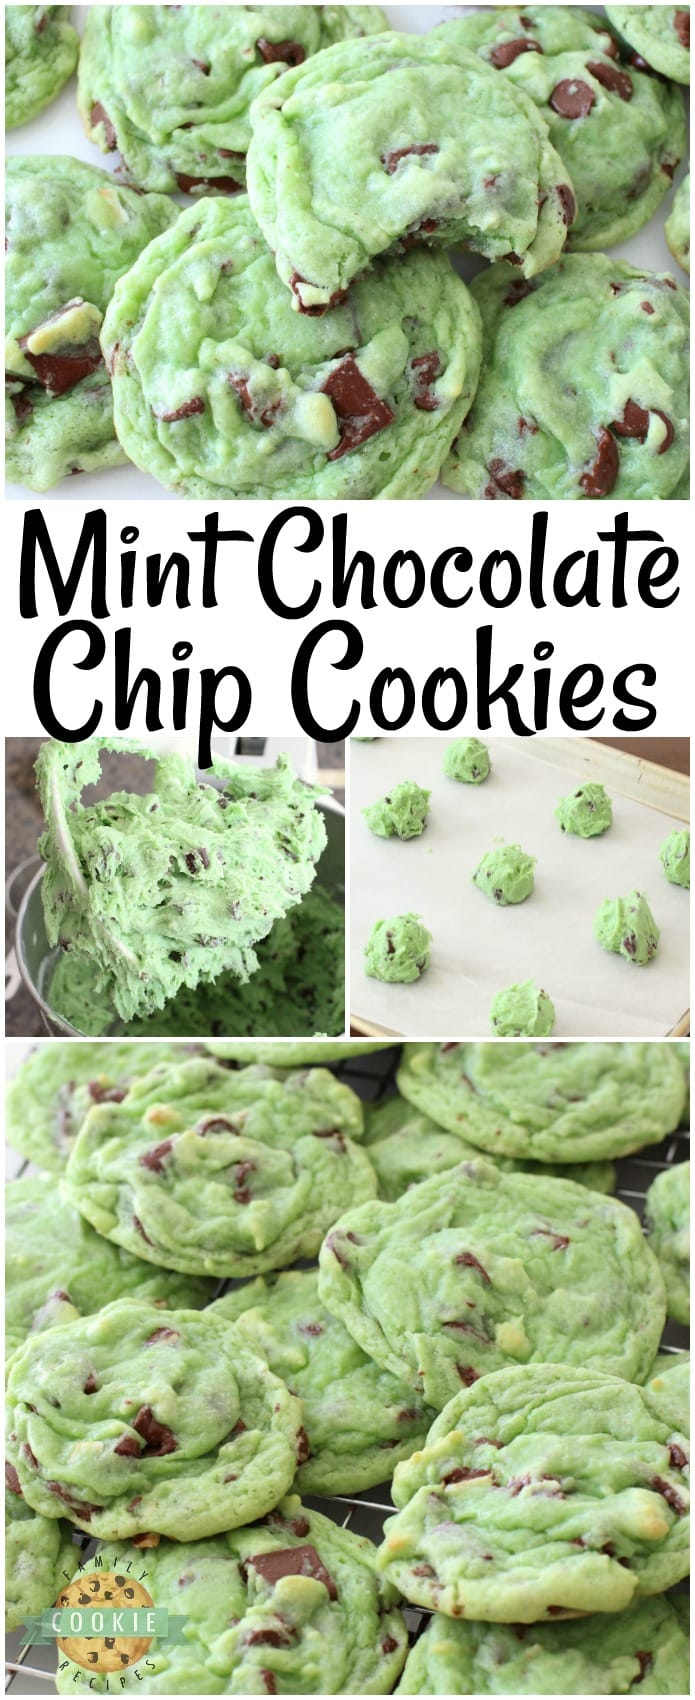 Mint Chocolate Chip Cookies made by adding mint extract & chocolate chips to a delicious pudding cookie dough. This chocolate chip cookie recipe is perfect for those who love mint chip ice cream. Our Mint Chocolate Chip Cookies are great for holiday baking! #chocolatechipcookies #cookies #cookie #mint #mintchip #baking #recipe from FAMILY COOKIE RECIPES